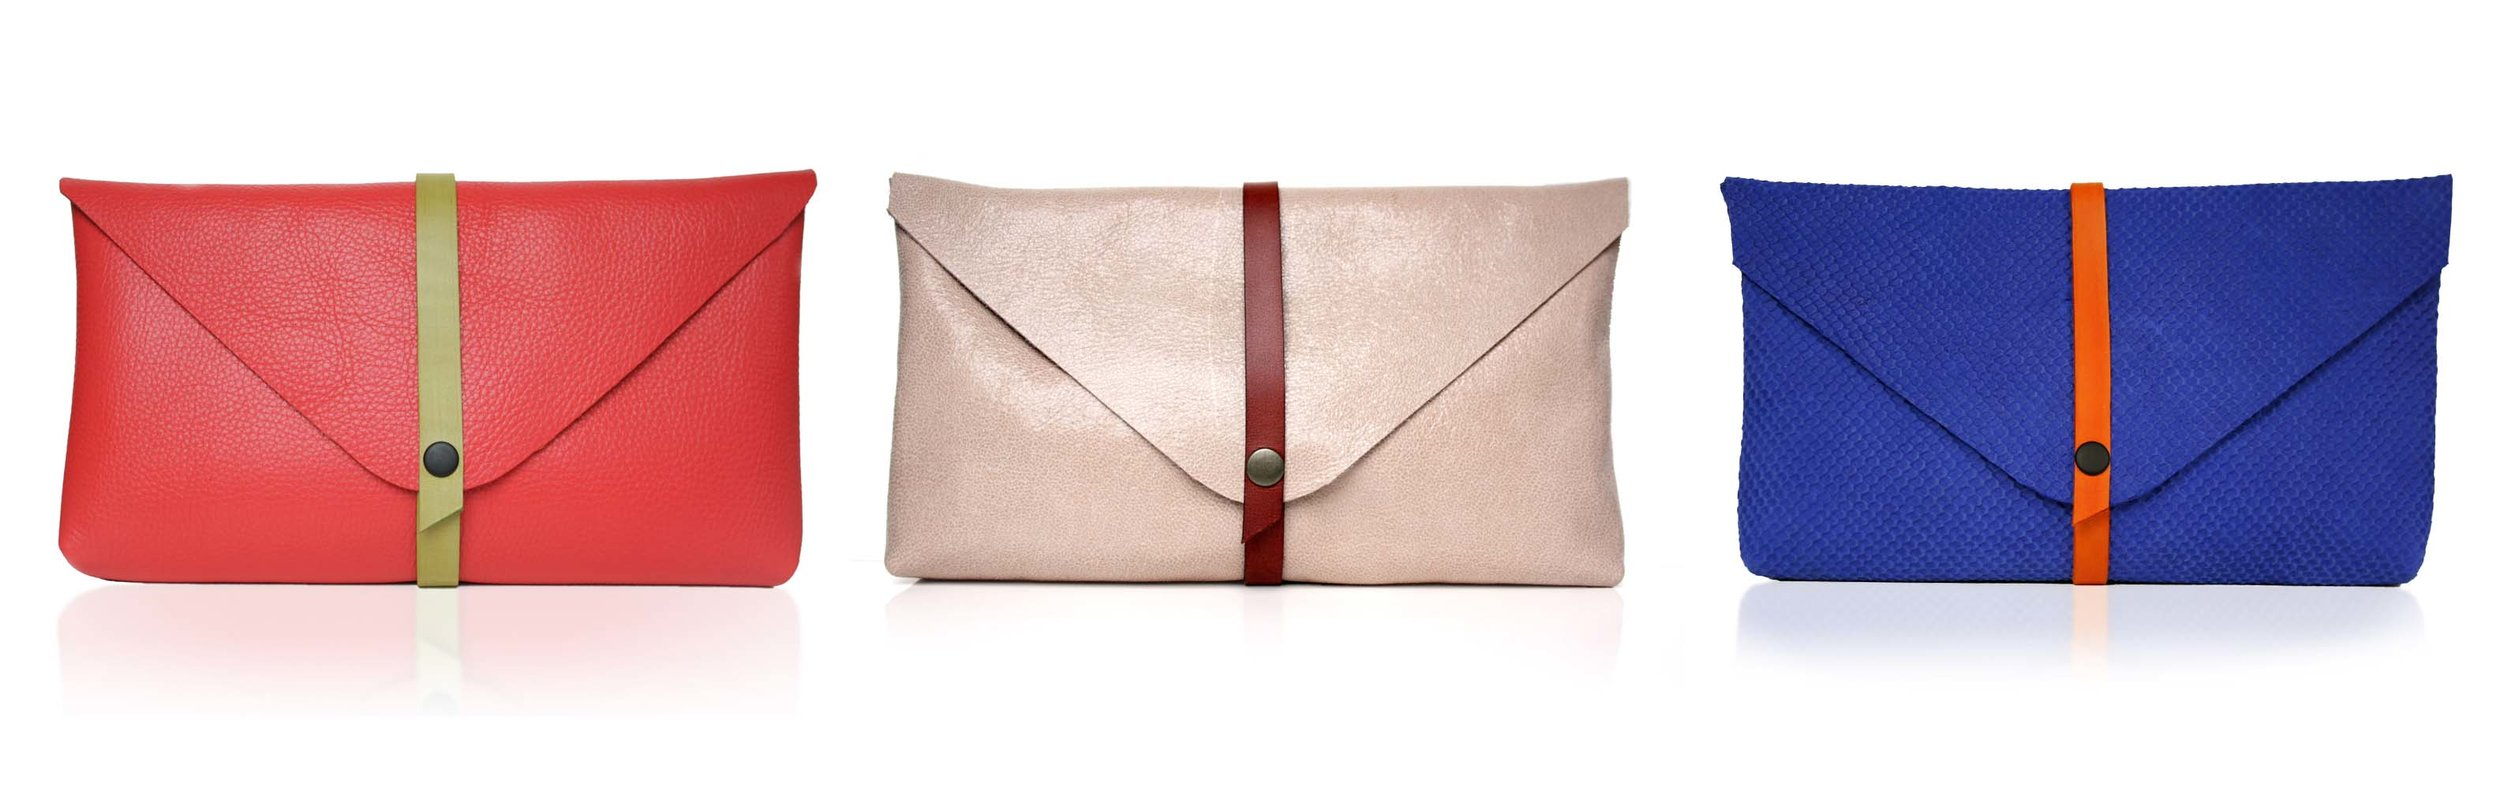 Assorted mix-and-match colour-strap clutch